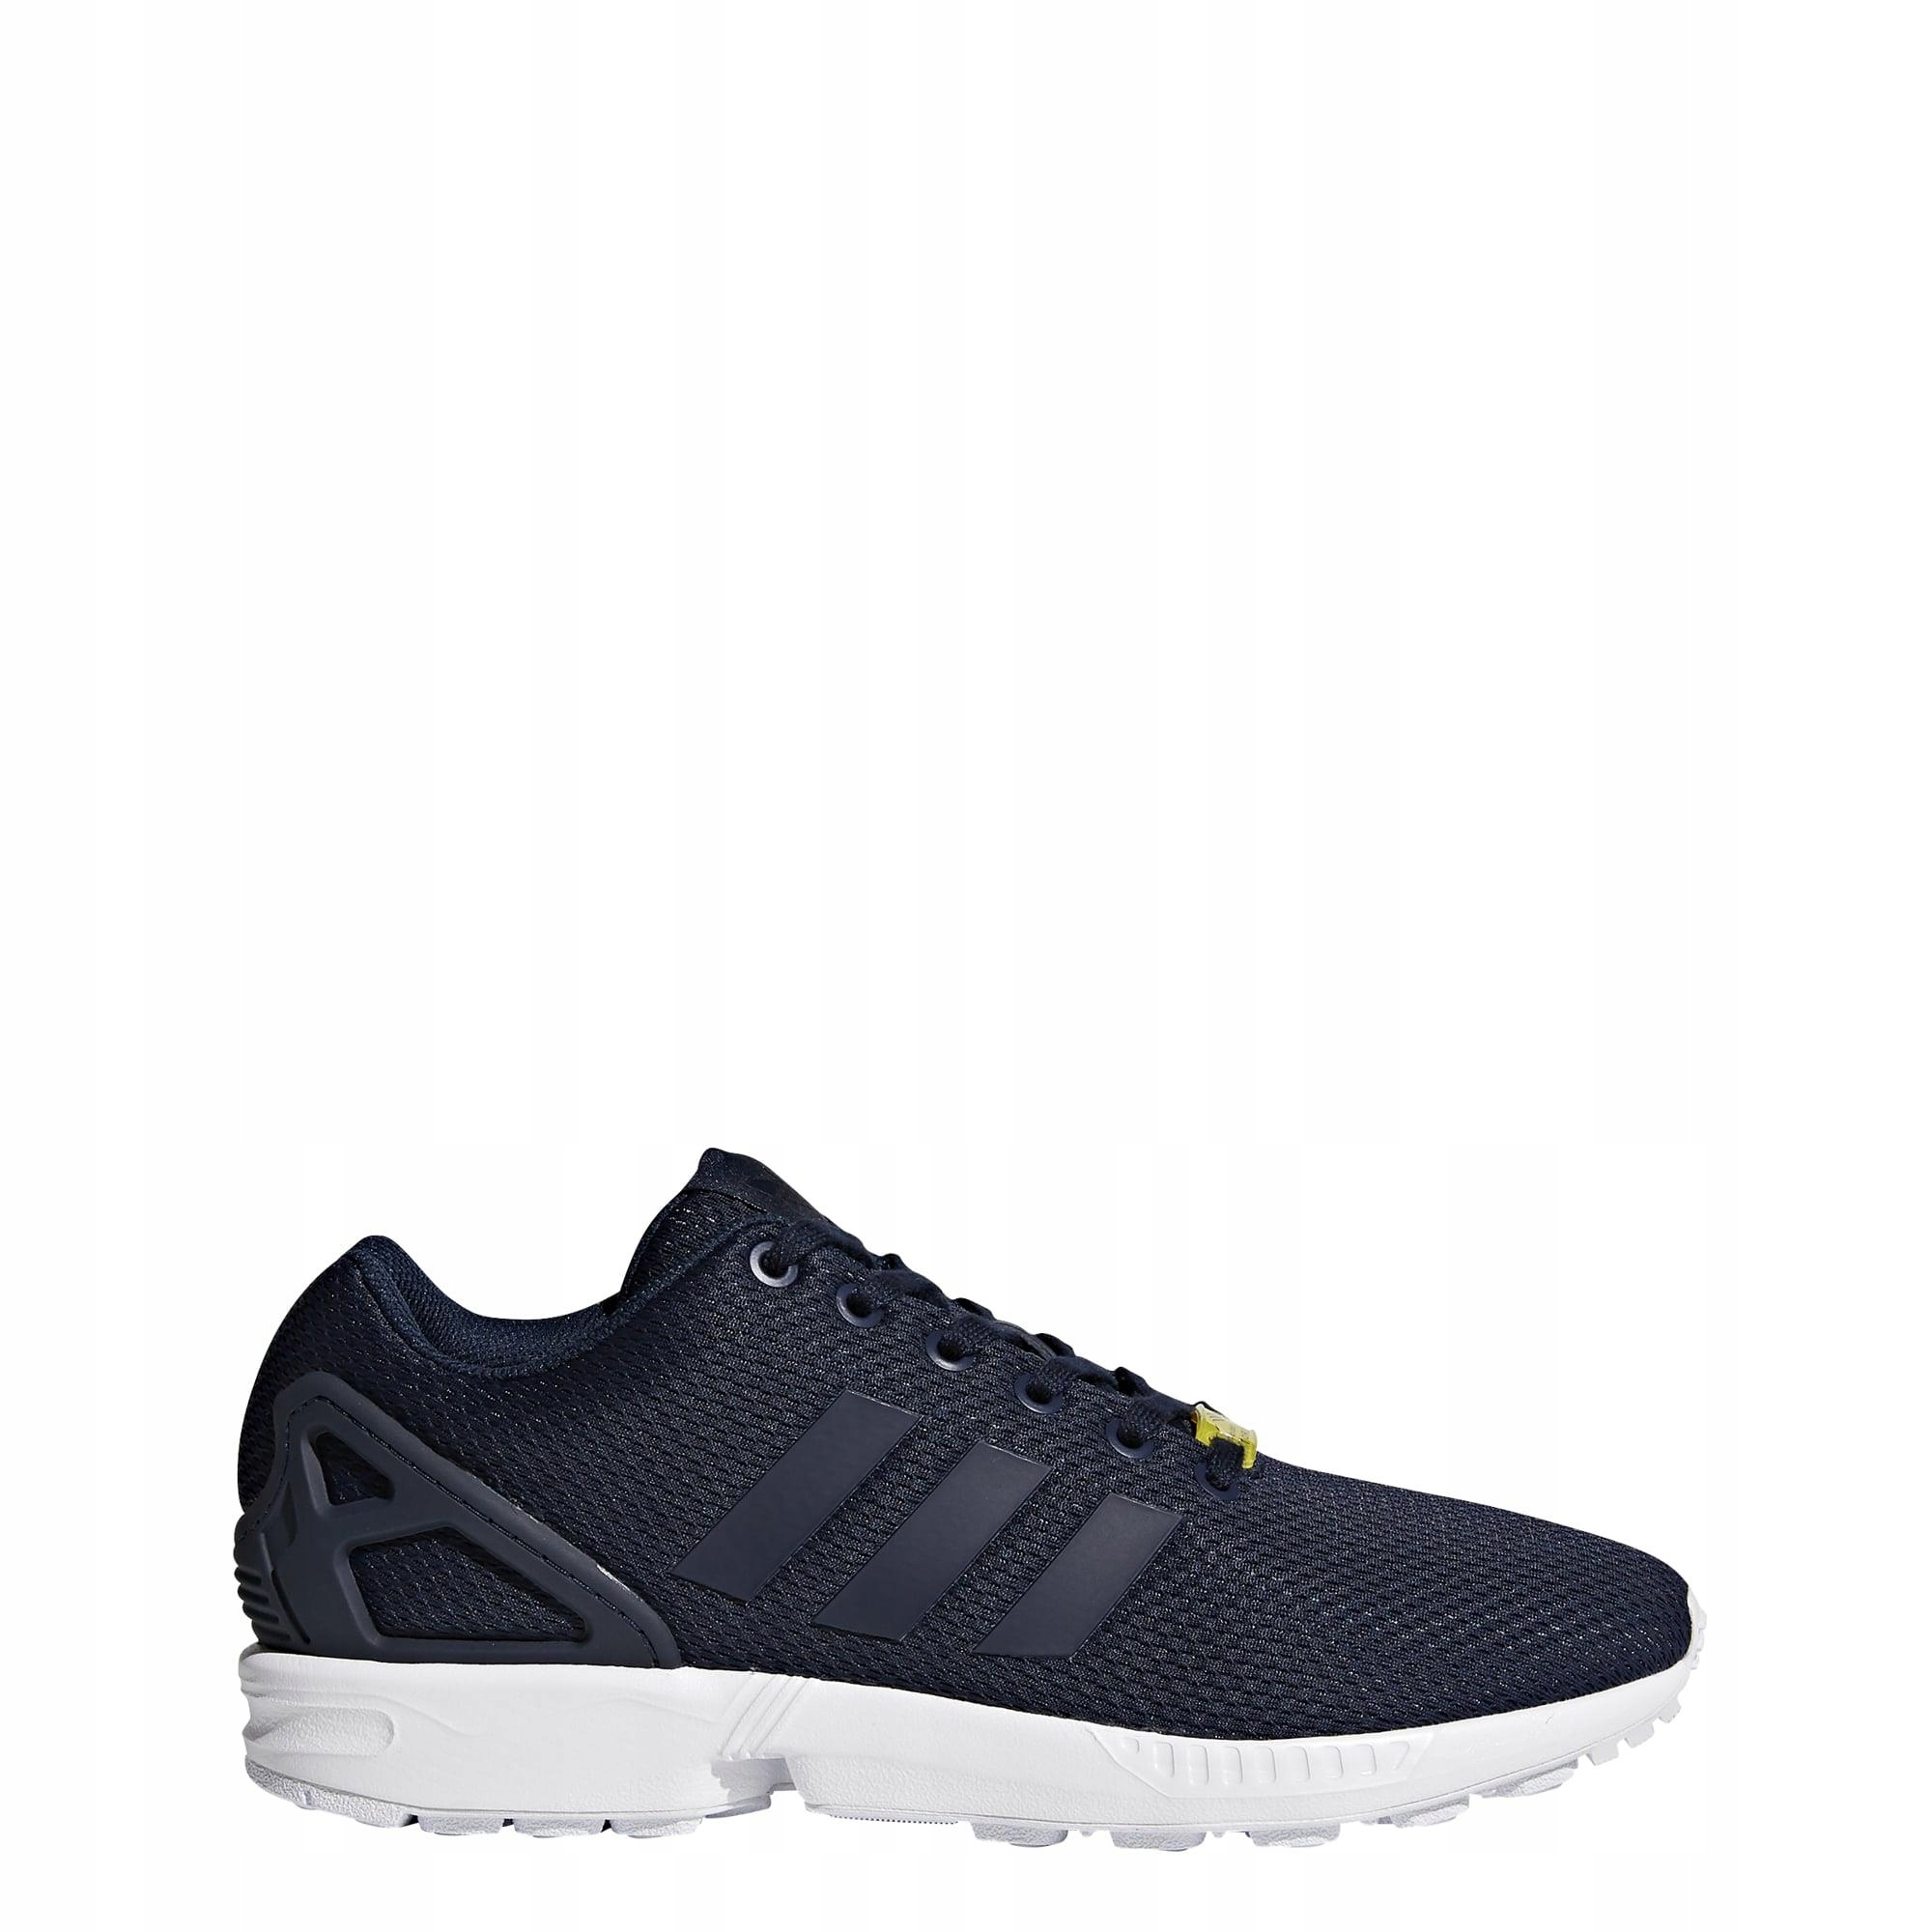 info for 51e6c 12184 BUTY ADIDAS ZX FLUX M19841 r 39 13